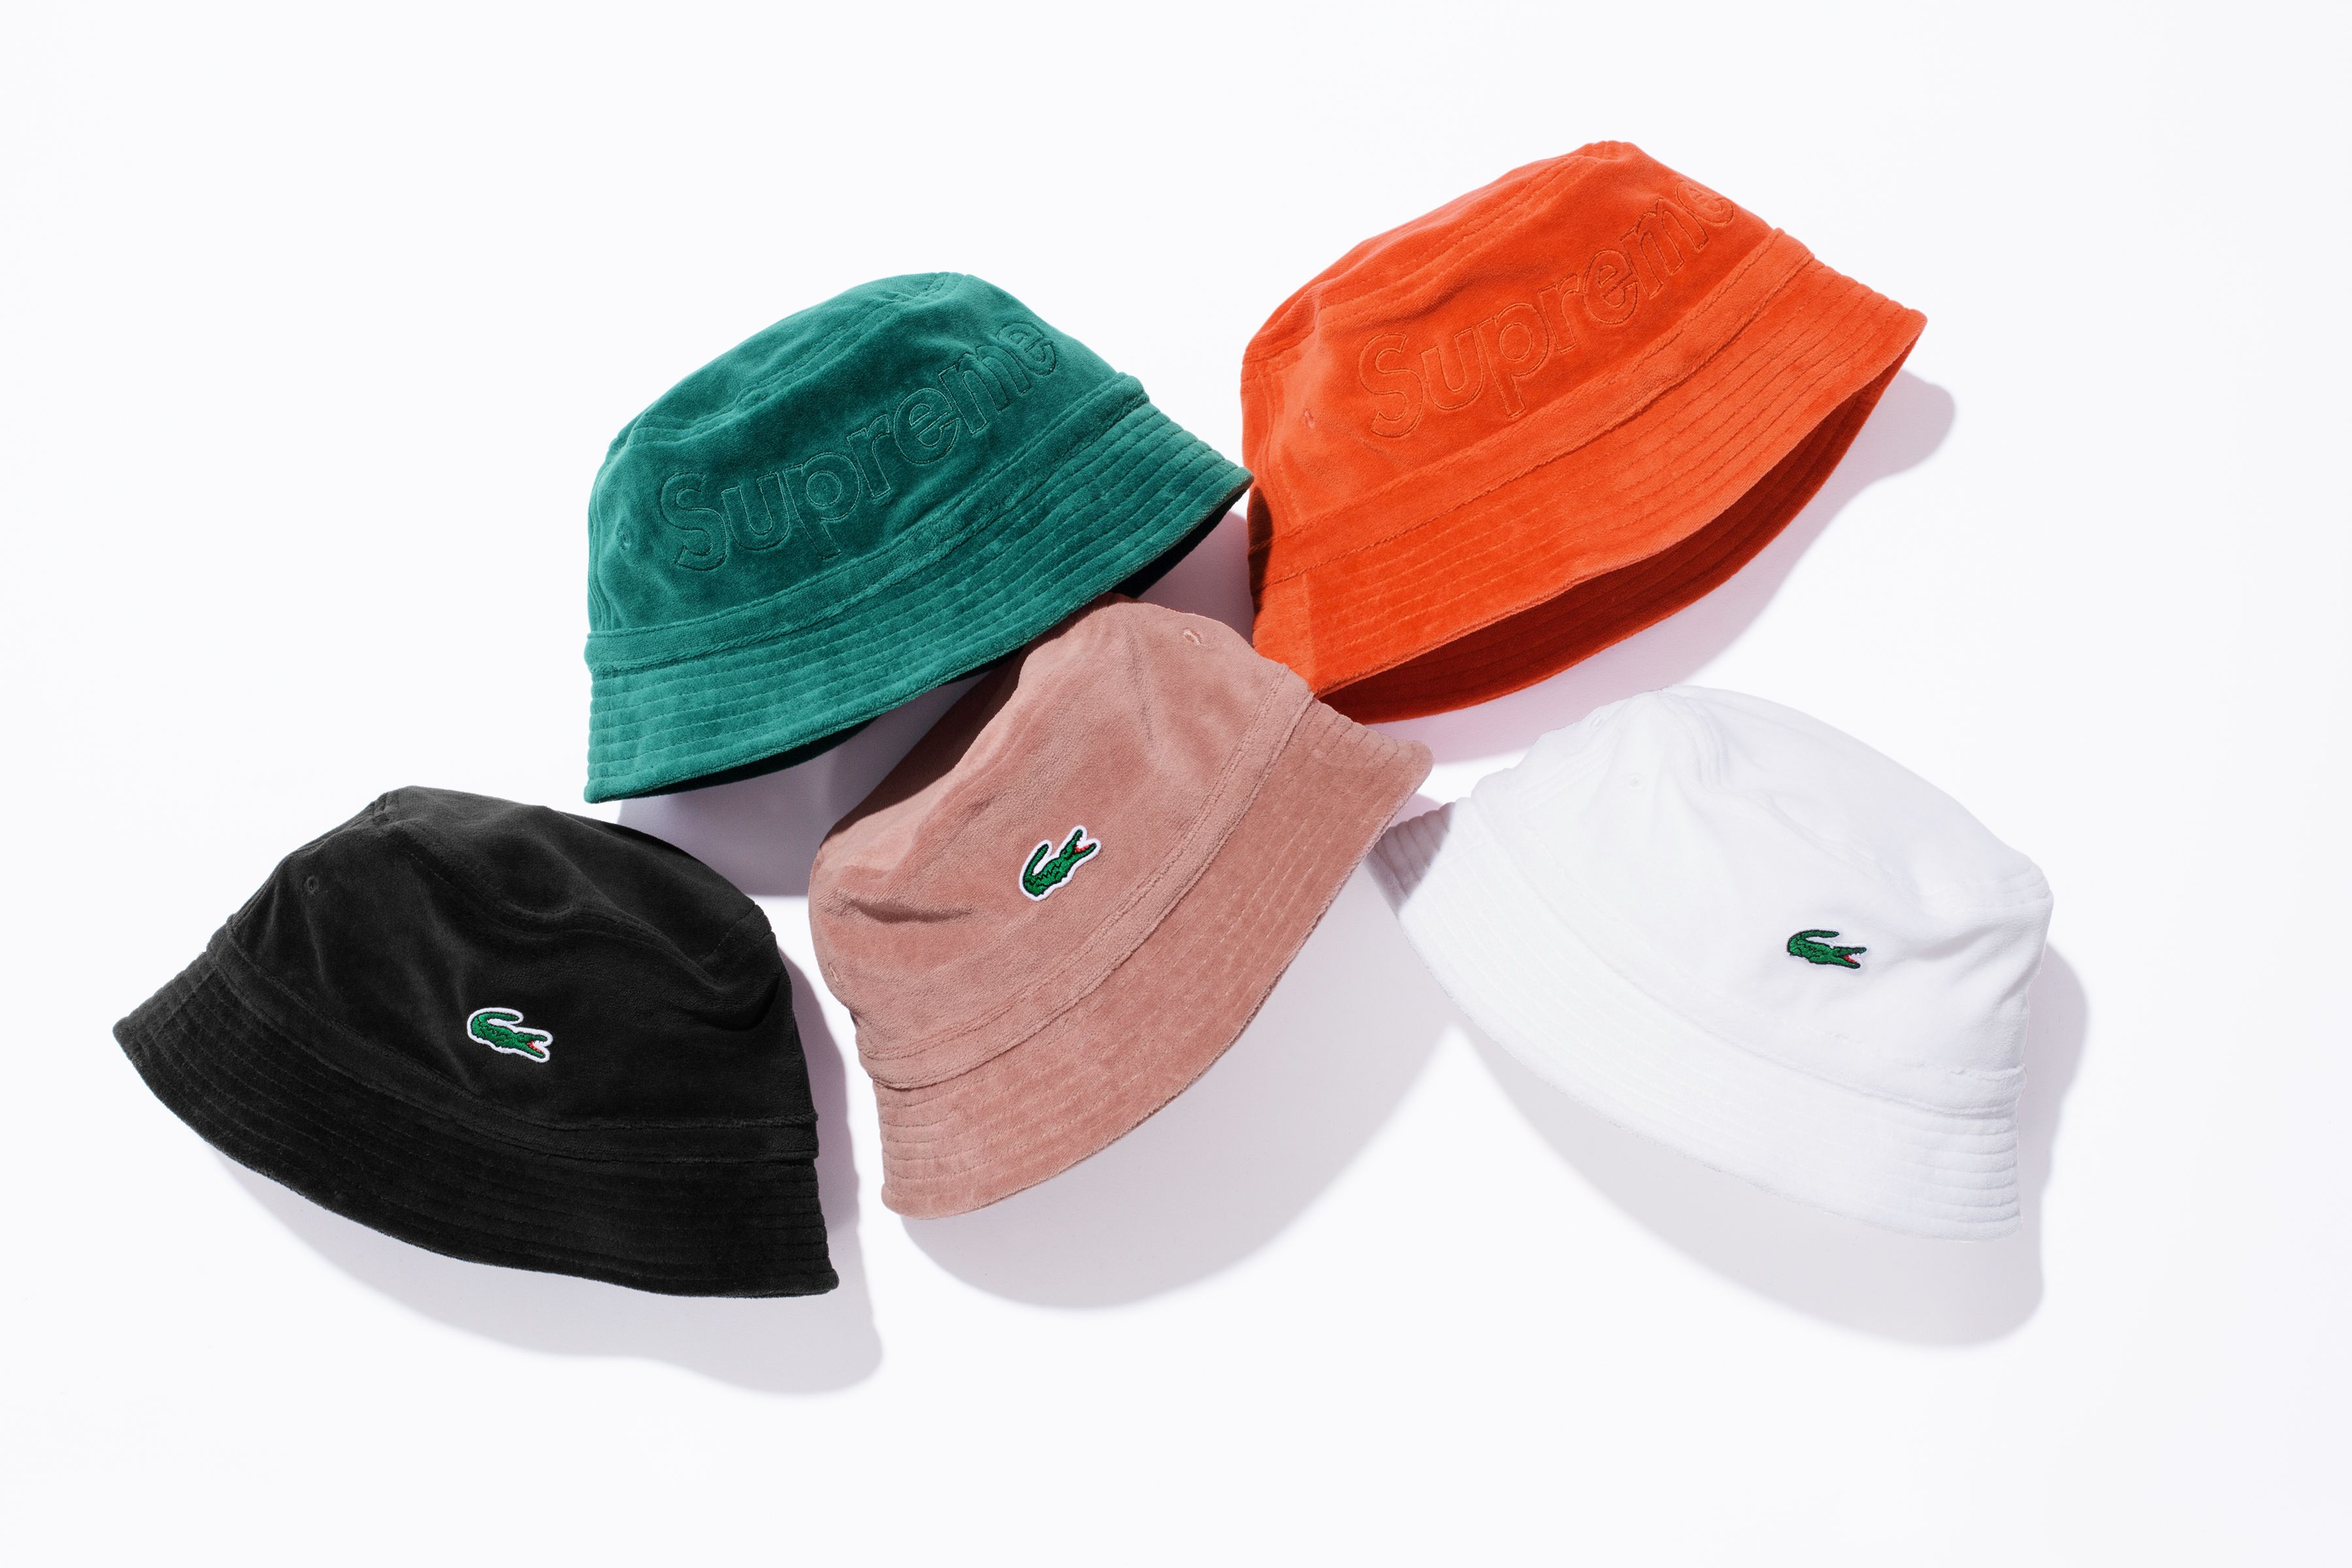 The Supreme Lacoste Collab Is Even Better This Time Around 88f9725136a